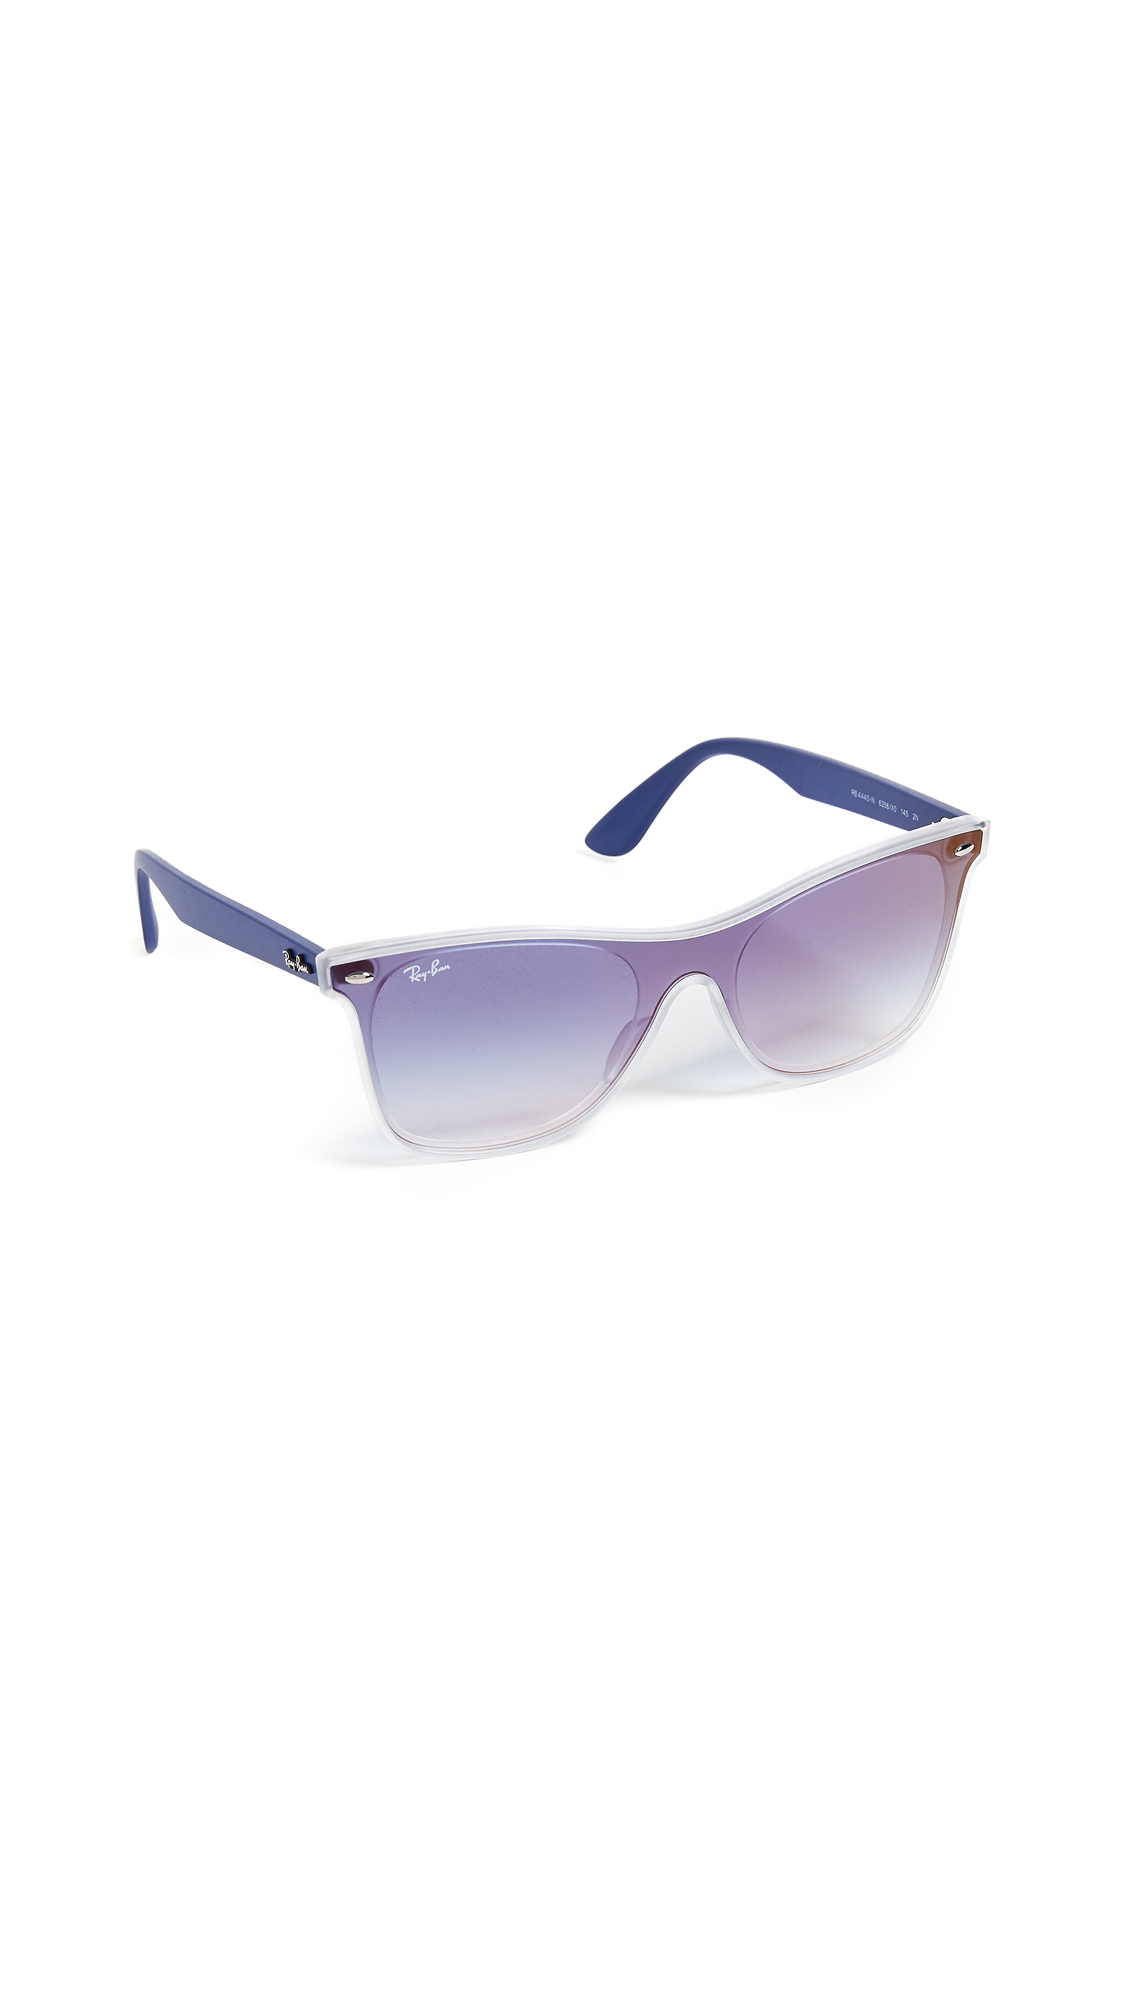 Ray-Ban Flat Sunglasses In Transparent/Gradient Blue